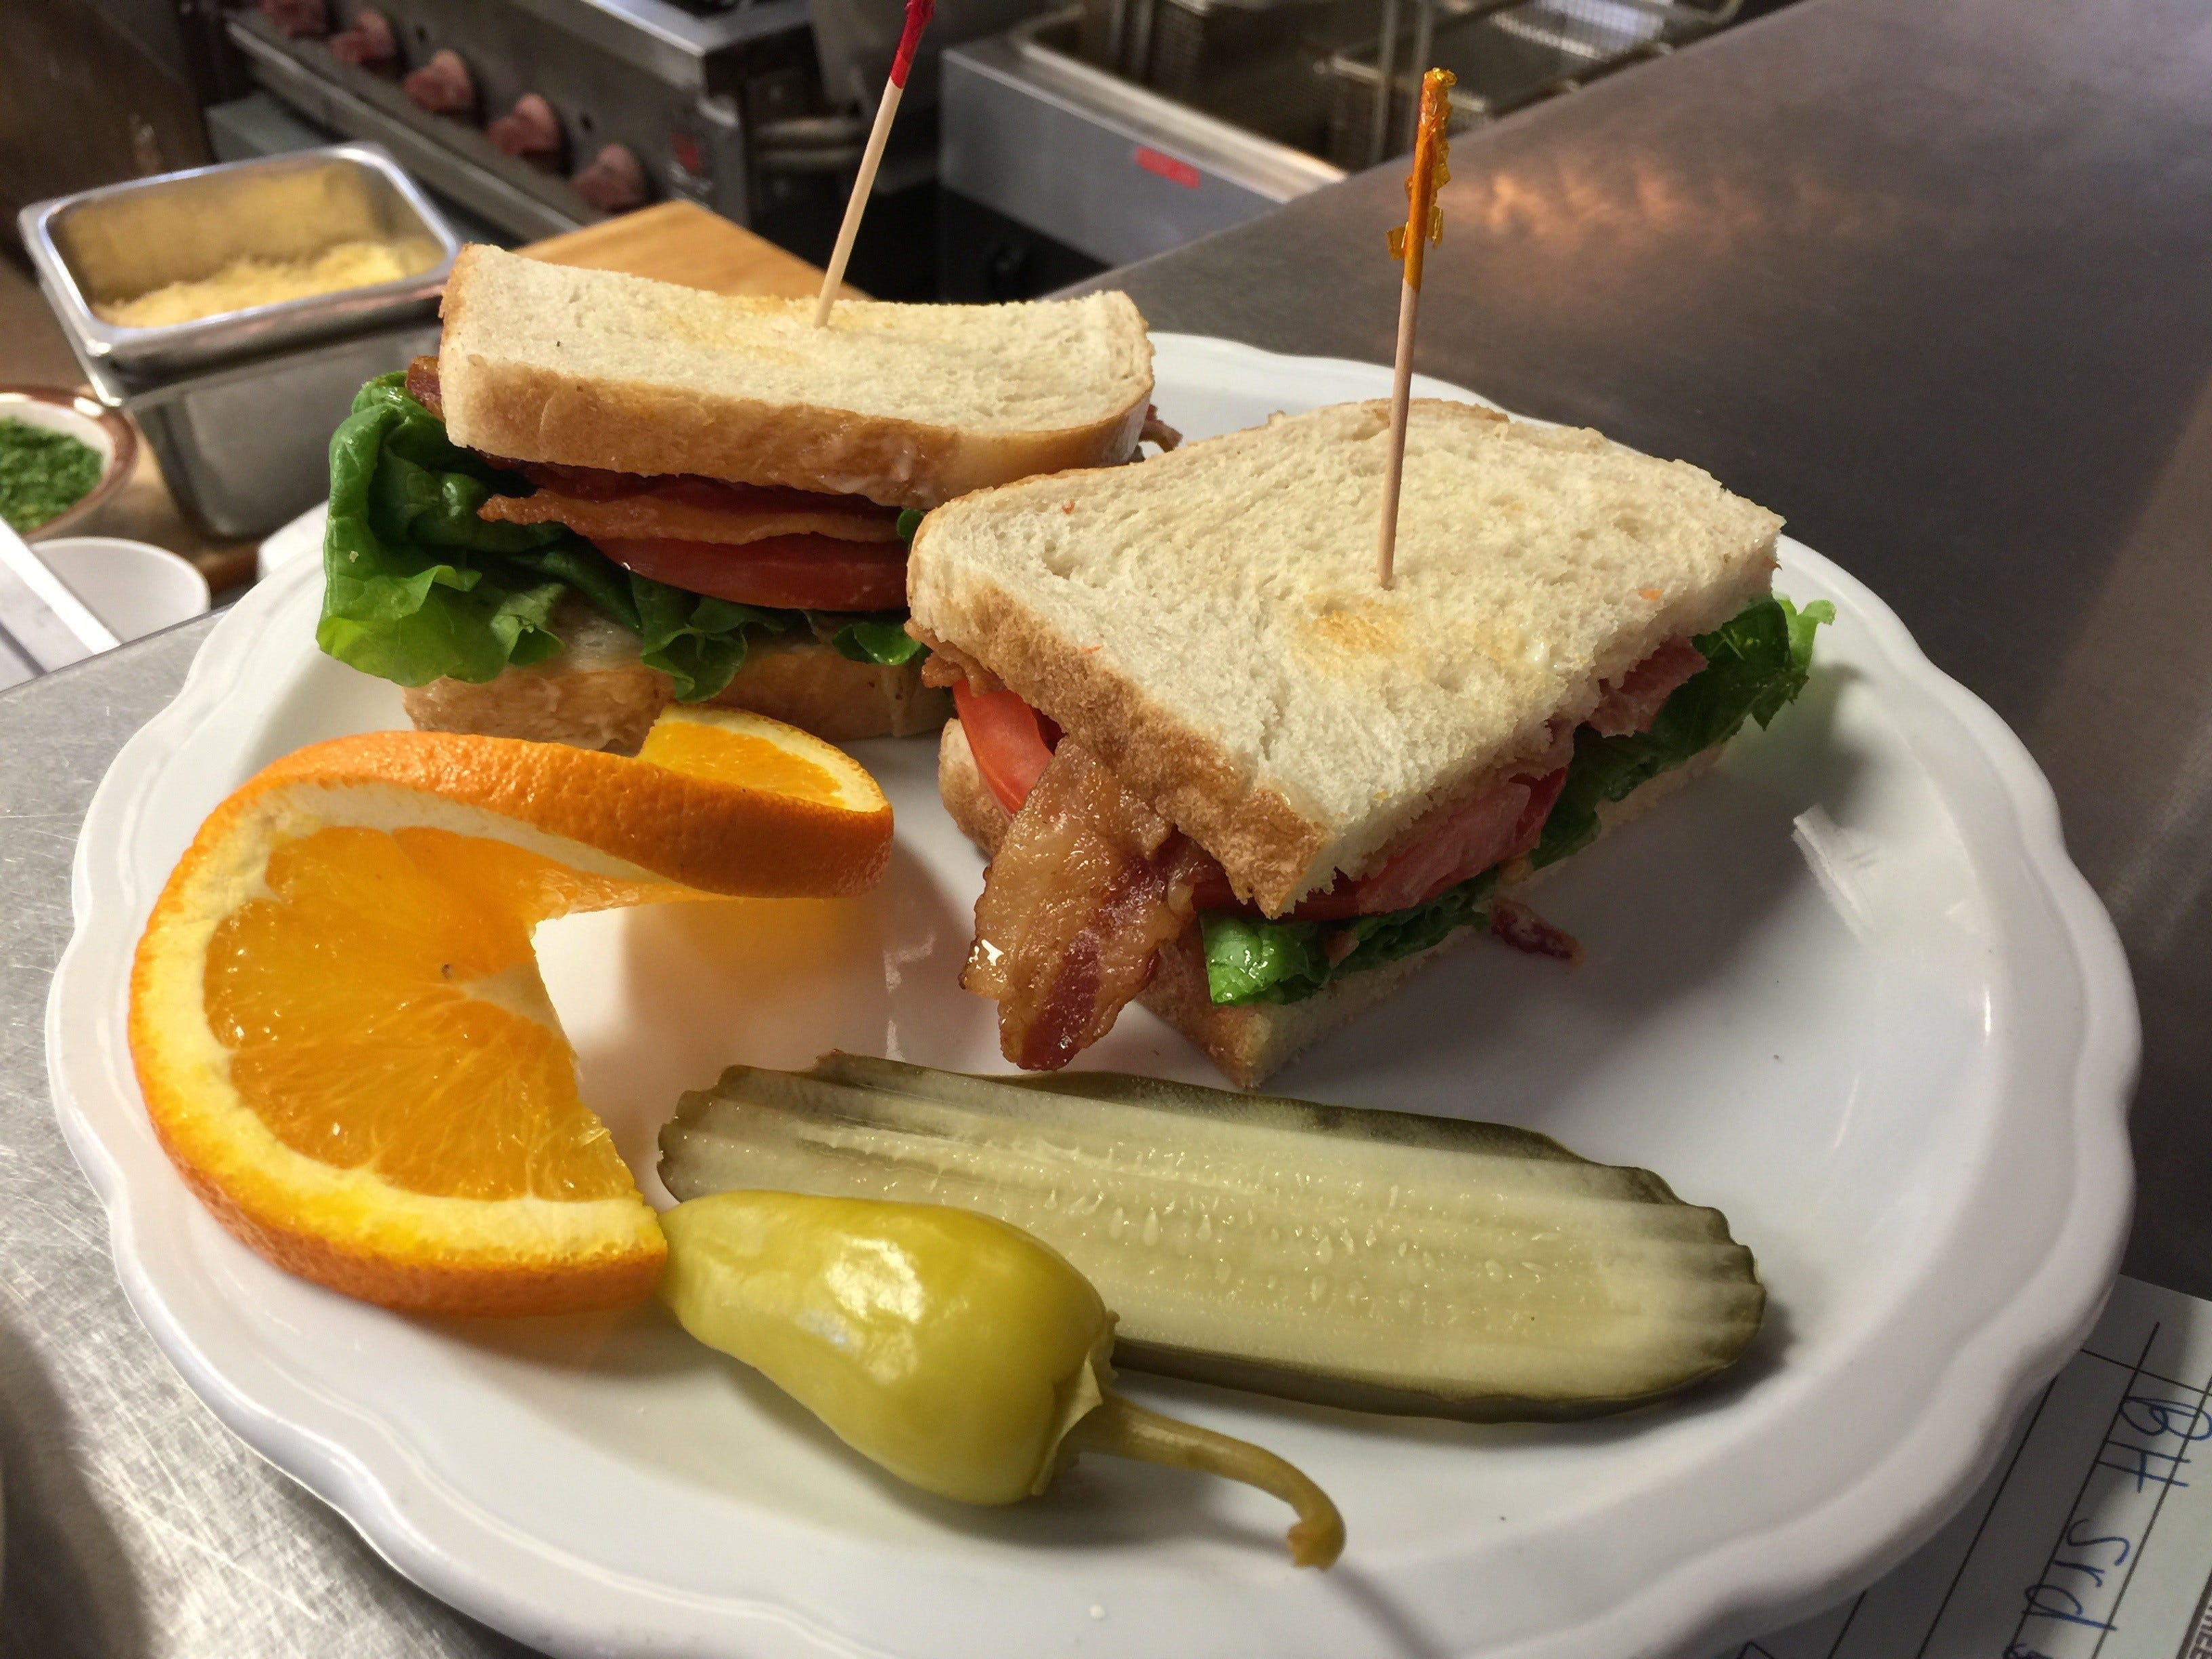 A bacon, lettuce and tomato sandwich lunch item at The Classroom